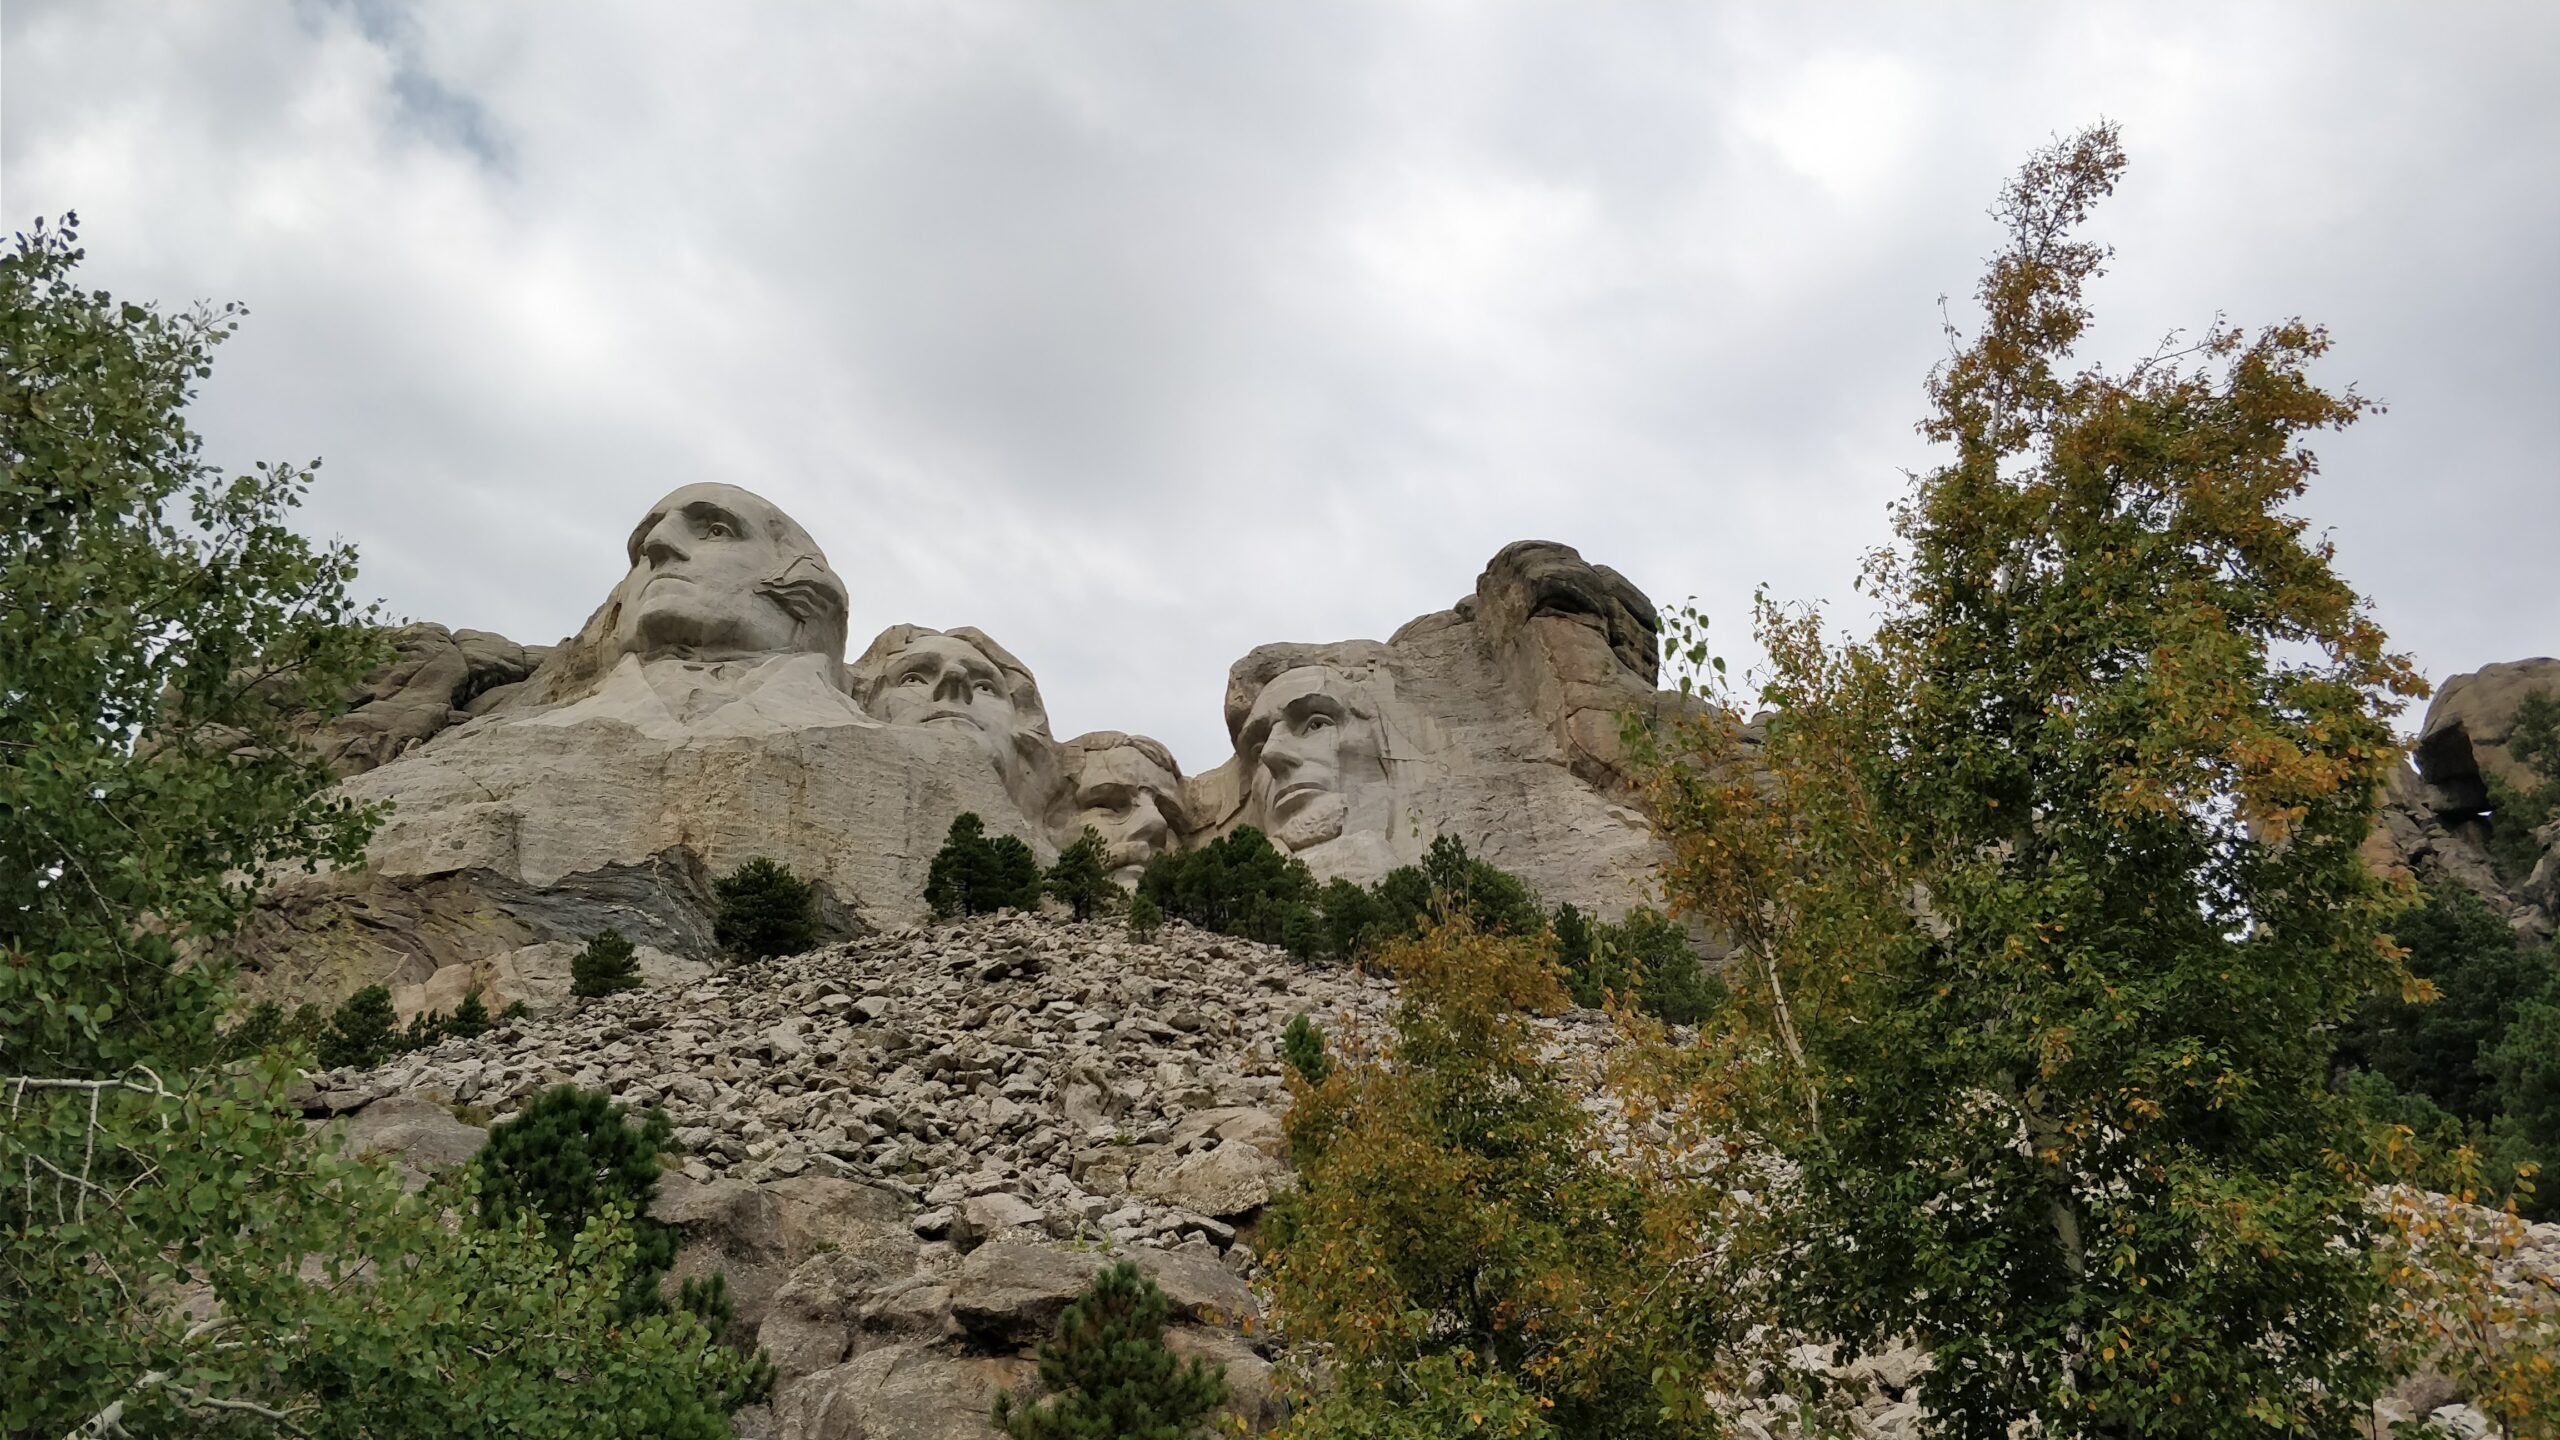 The Presidents at Mount Rushmore